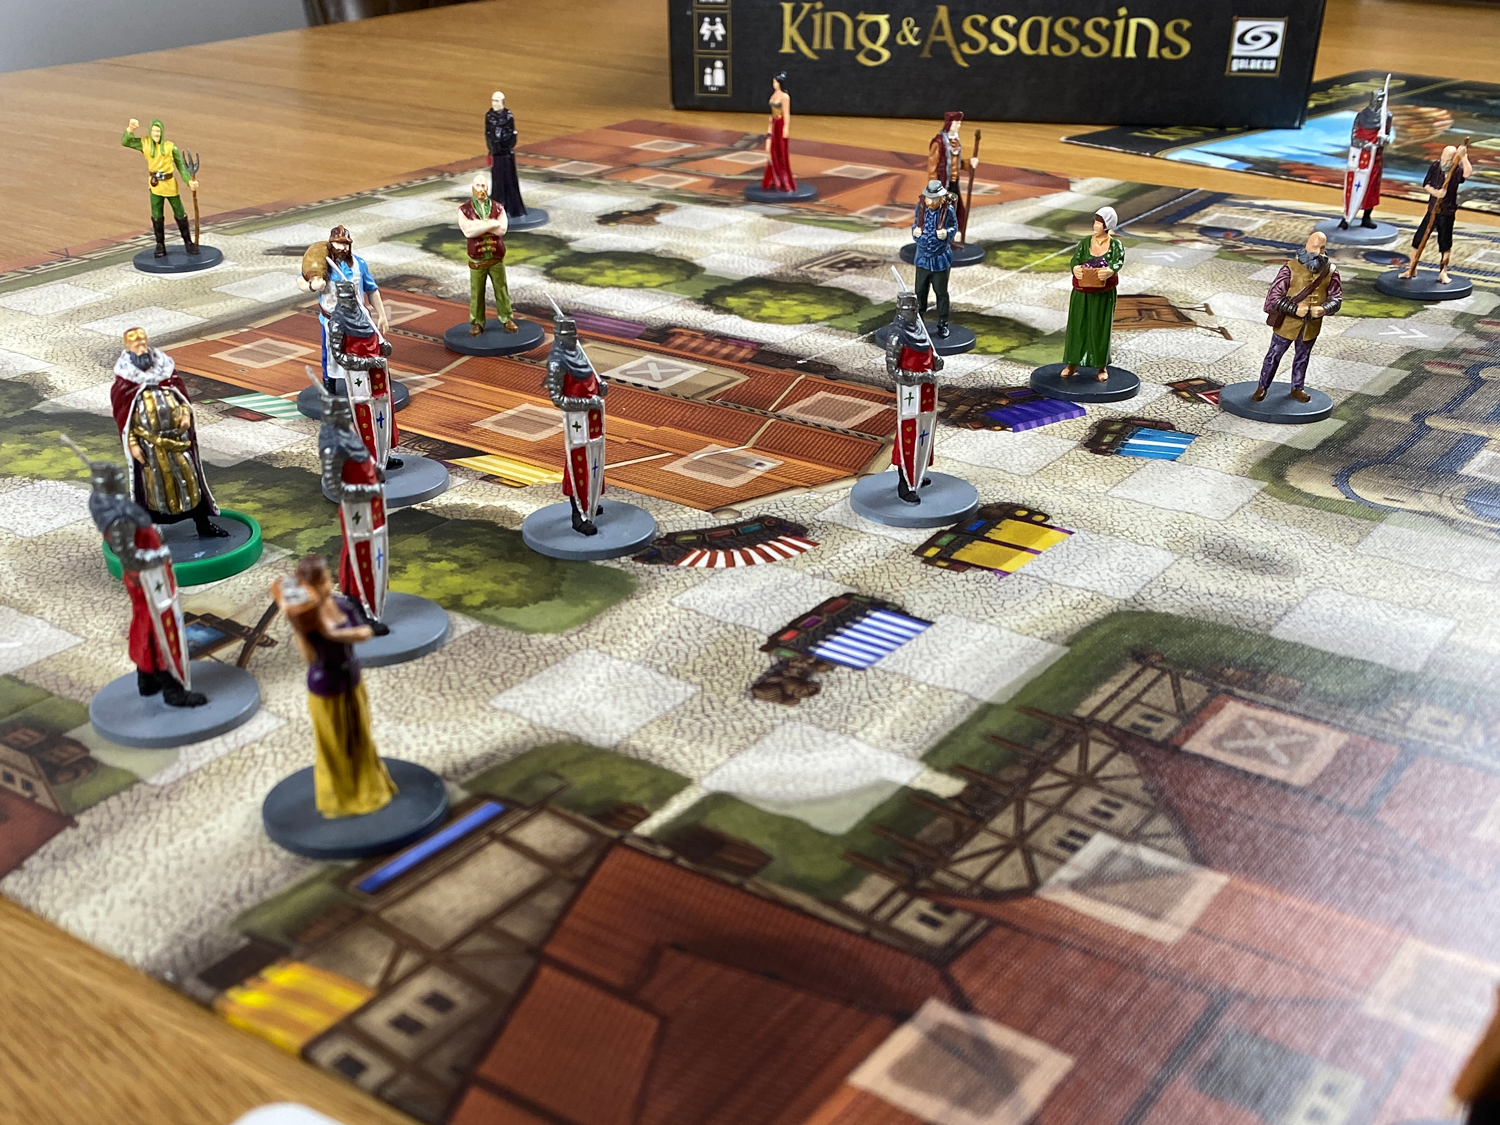 King-and-Assassins-Board-Game-03